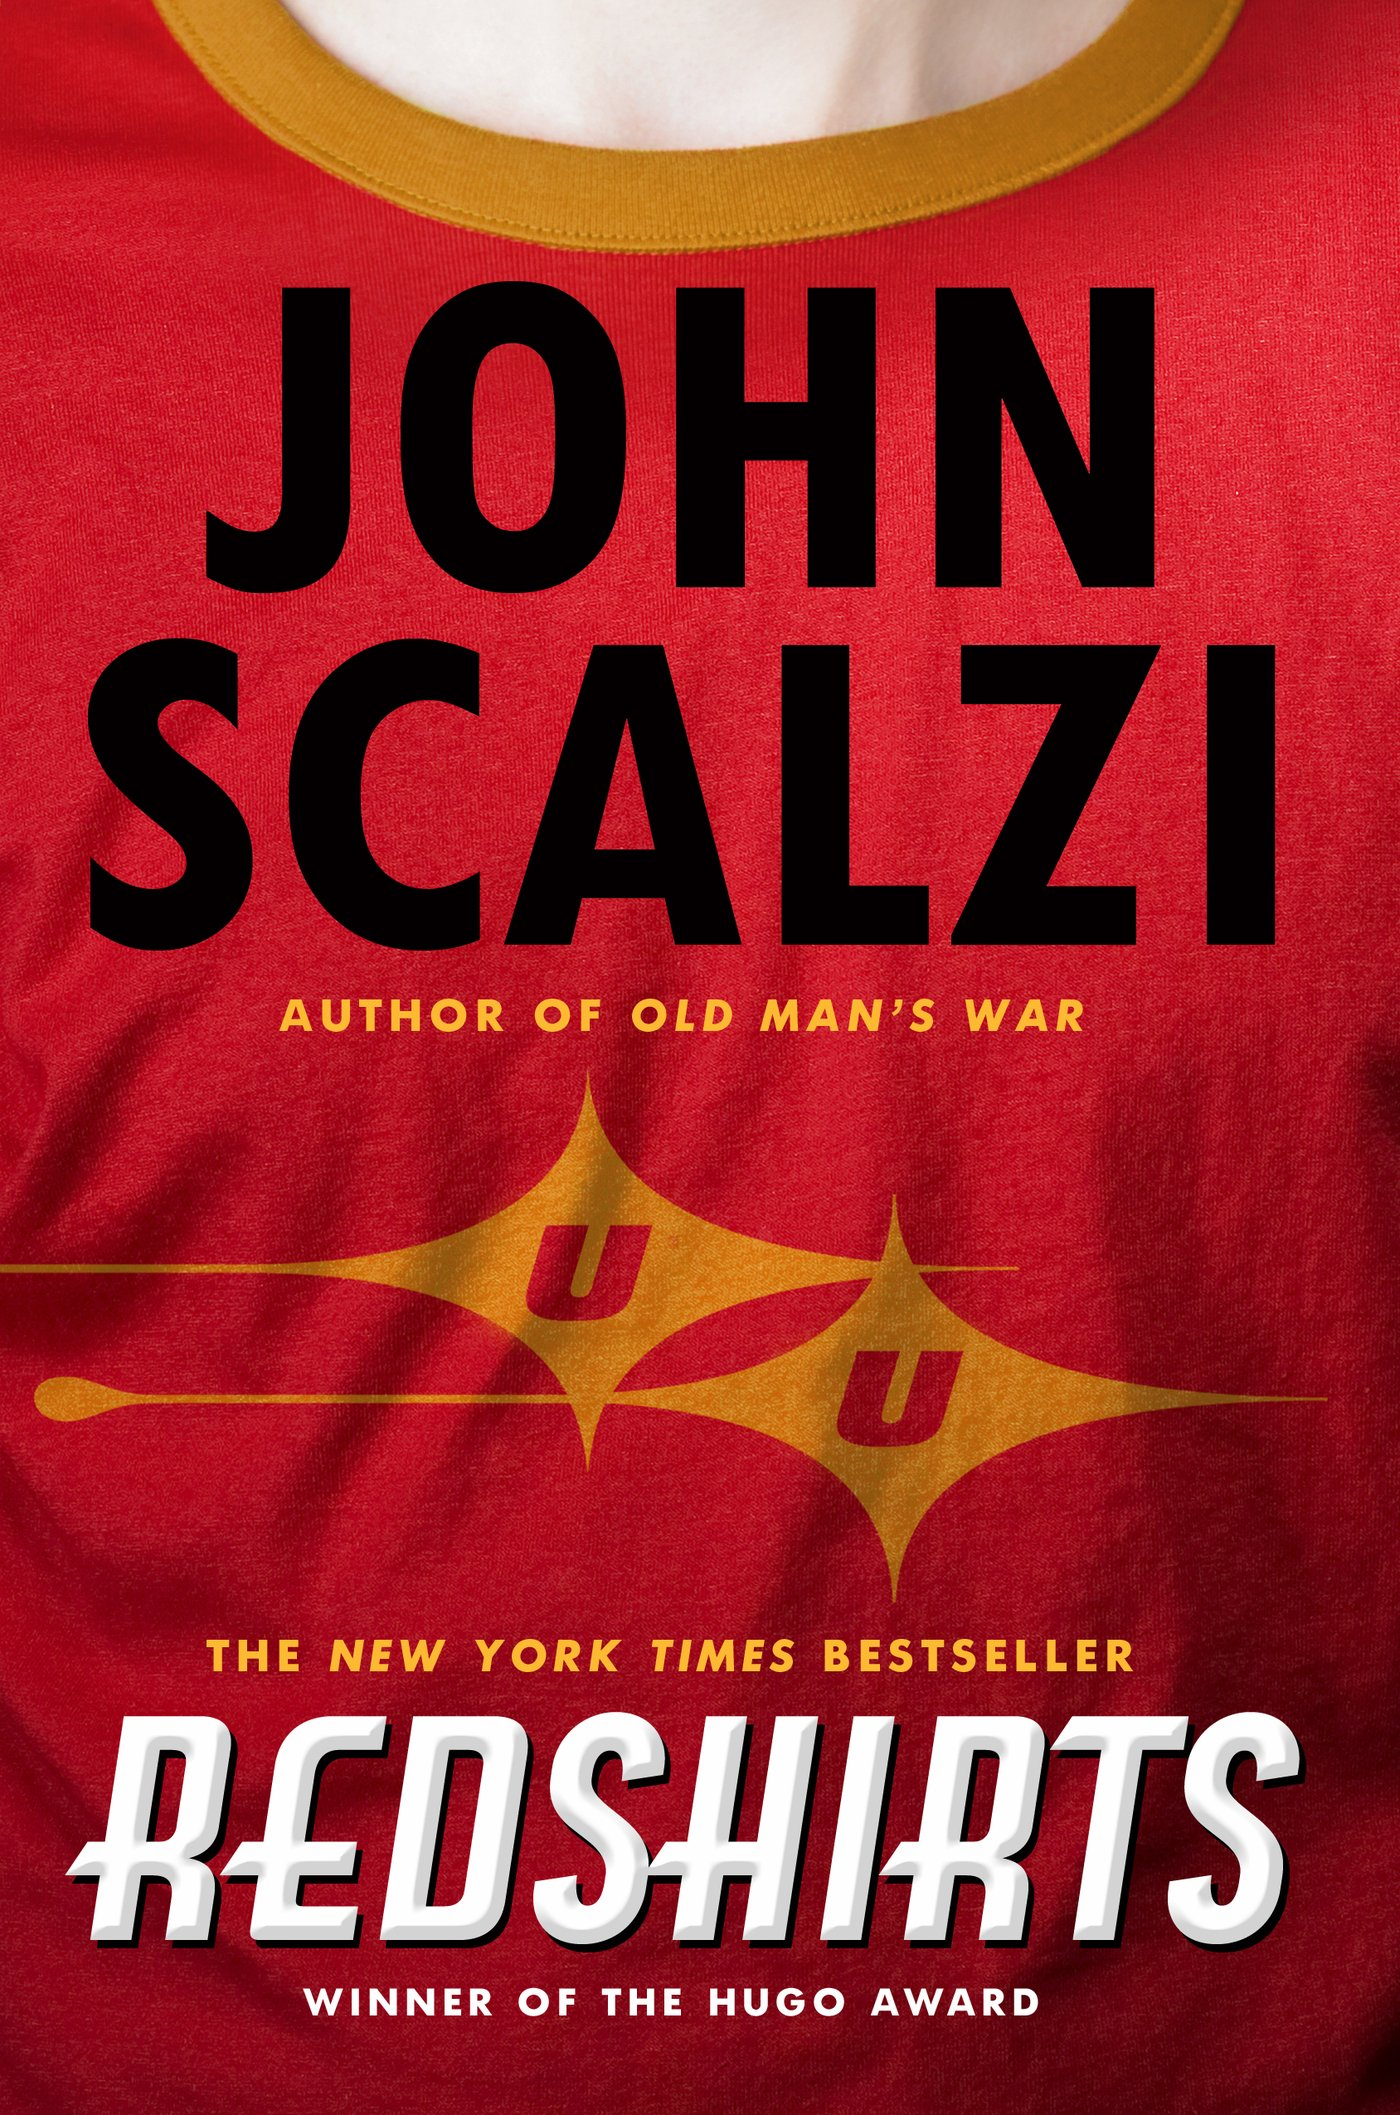 http://www.amazon.com/Redshirts-Novel-Three-John-Scalzi/dp/0765334798/ref=sr_1_1?ie=UTF8&qid=1425080334&sr=8-1&keywords=redshirts